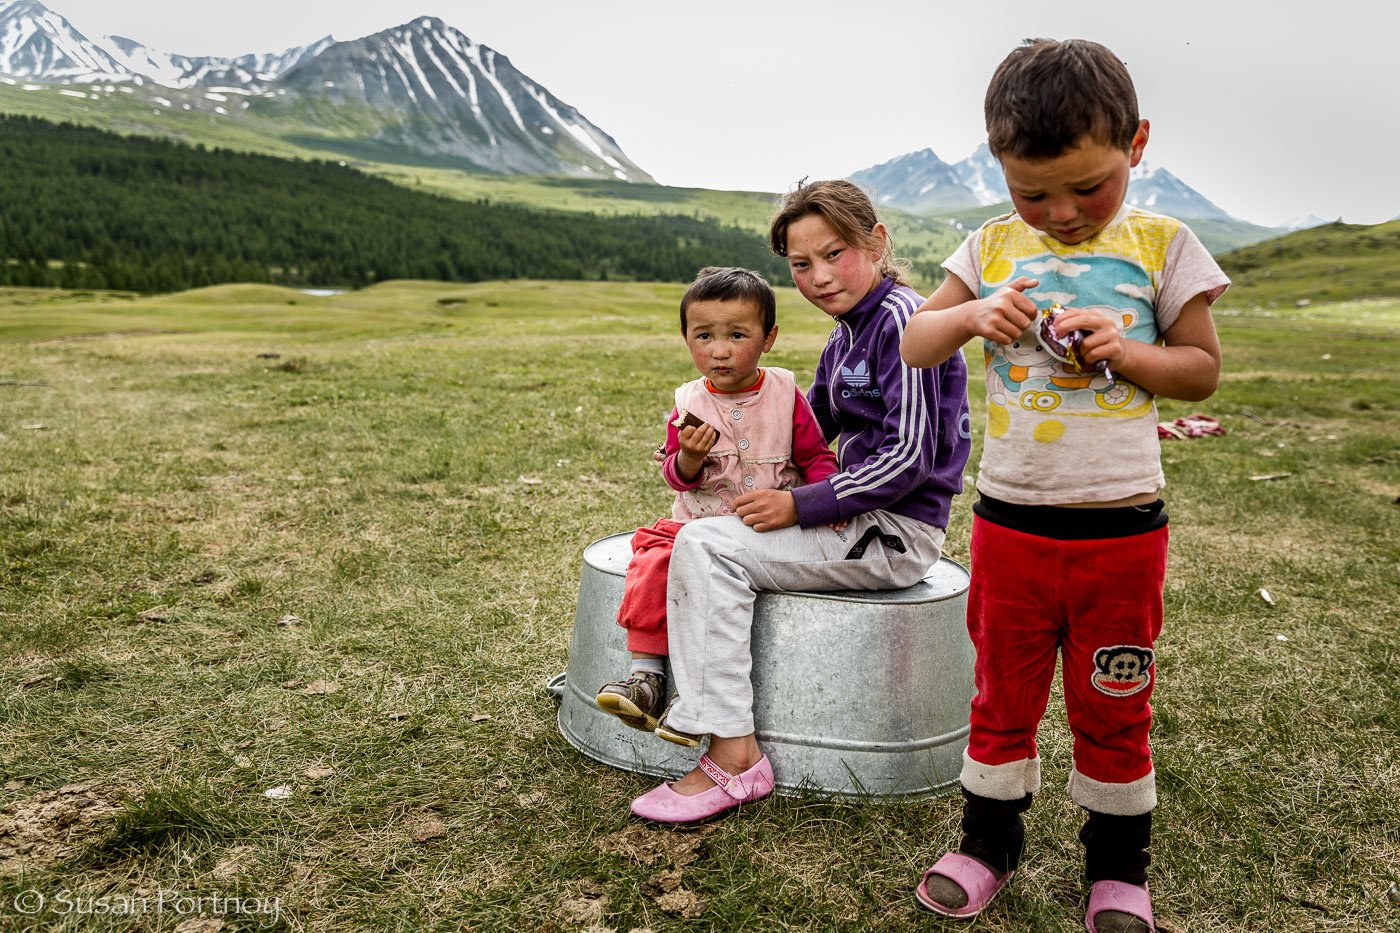 Three Kazakh children in the Altai Tavan Bogd National Park, Mongolia